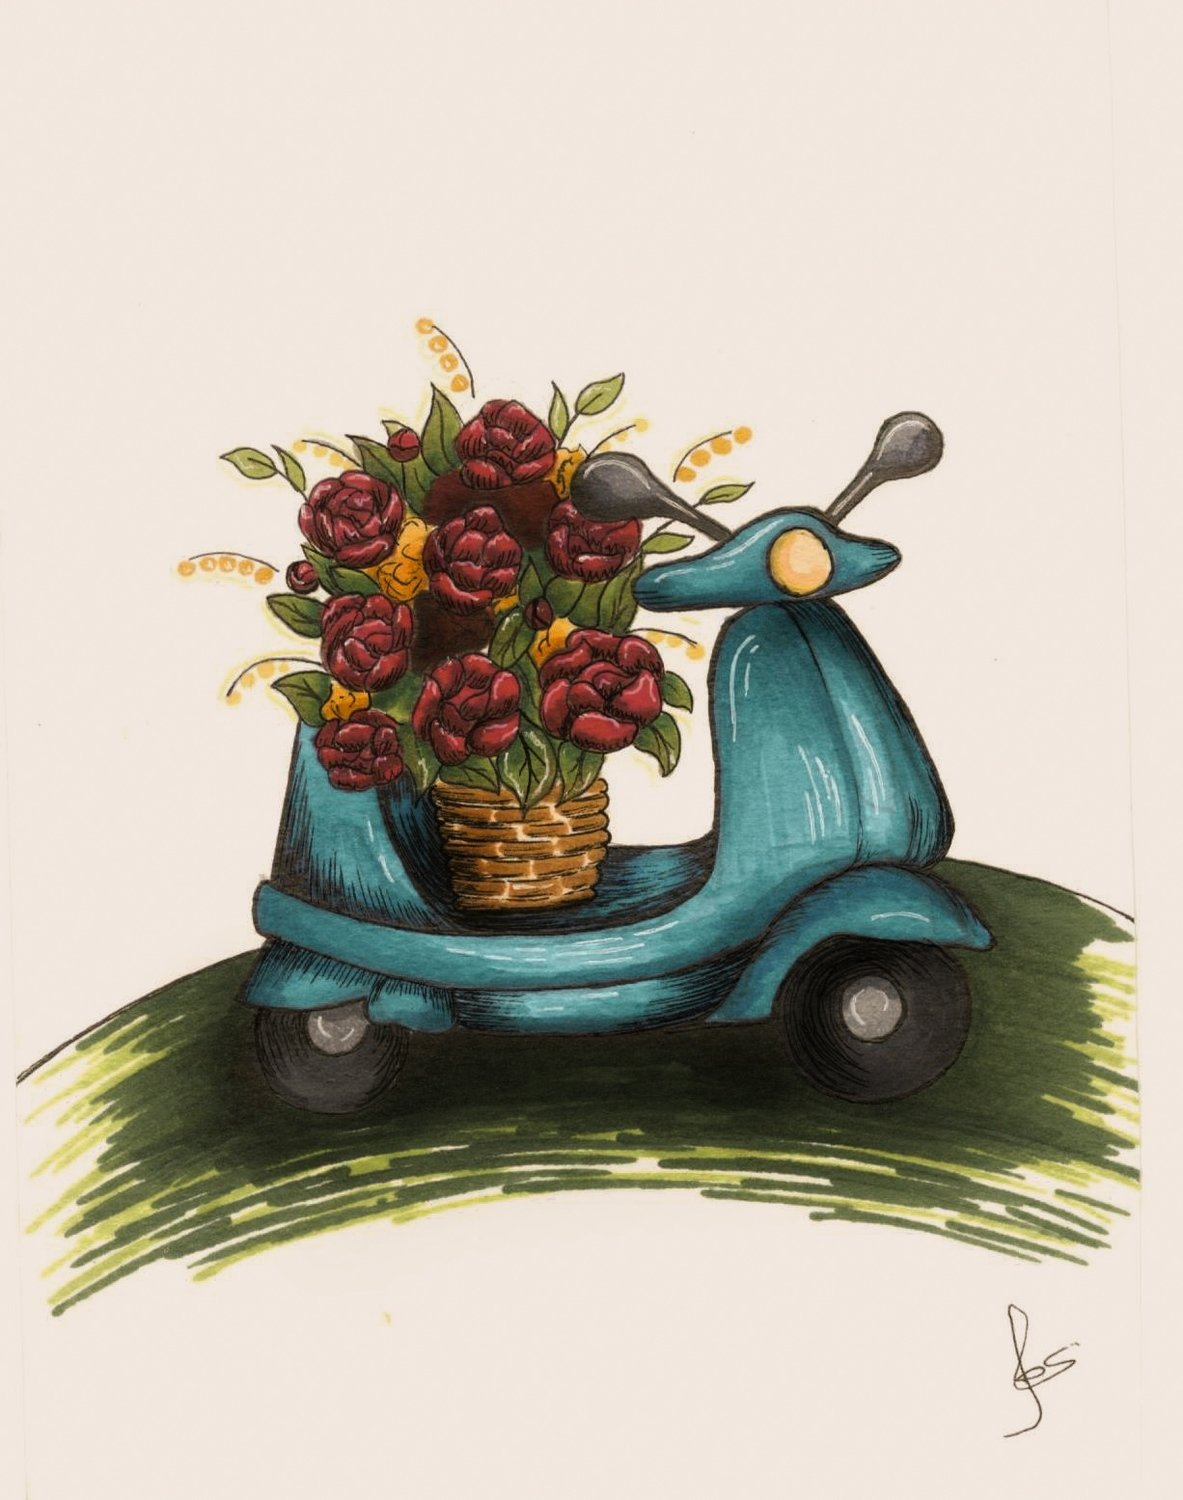 Flowers on a moped